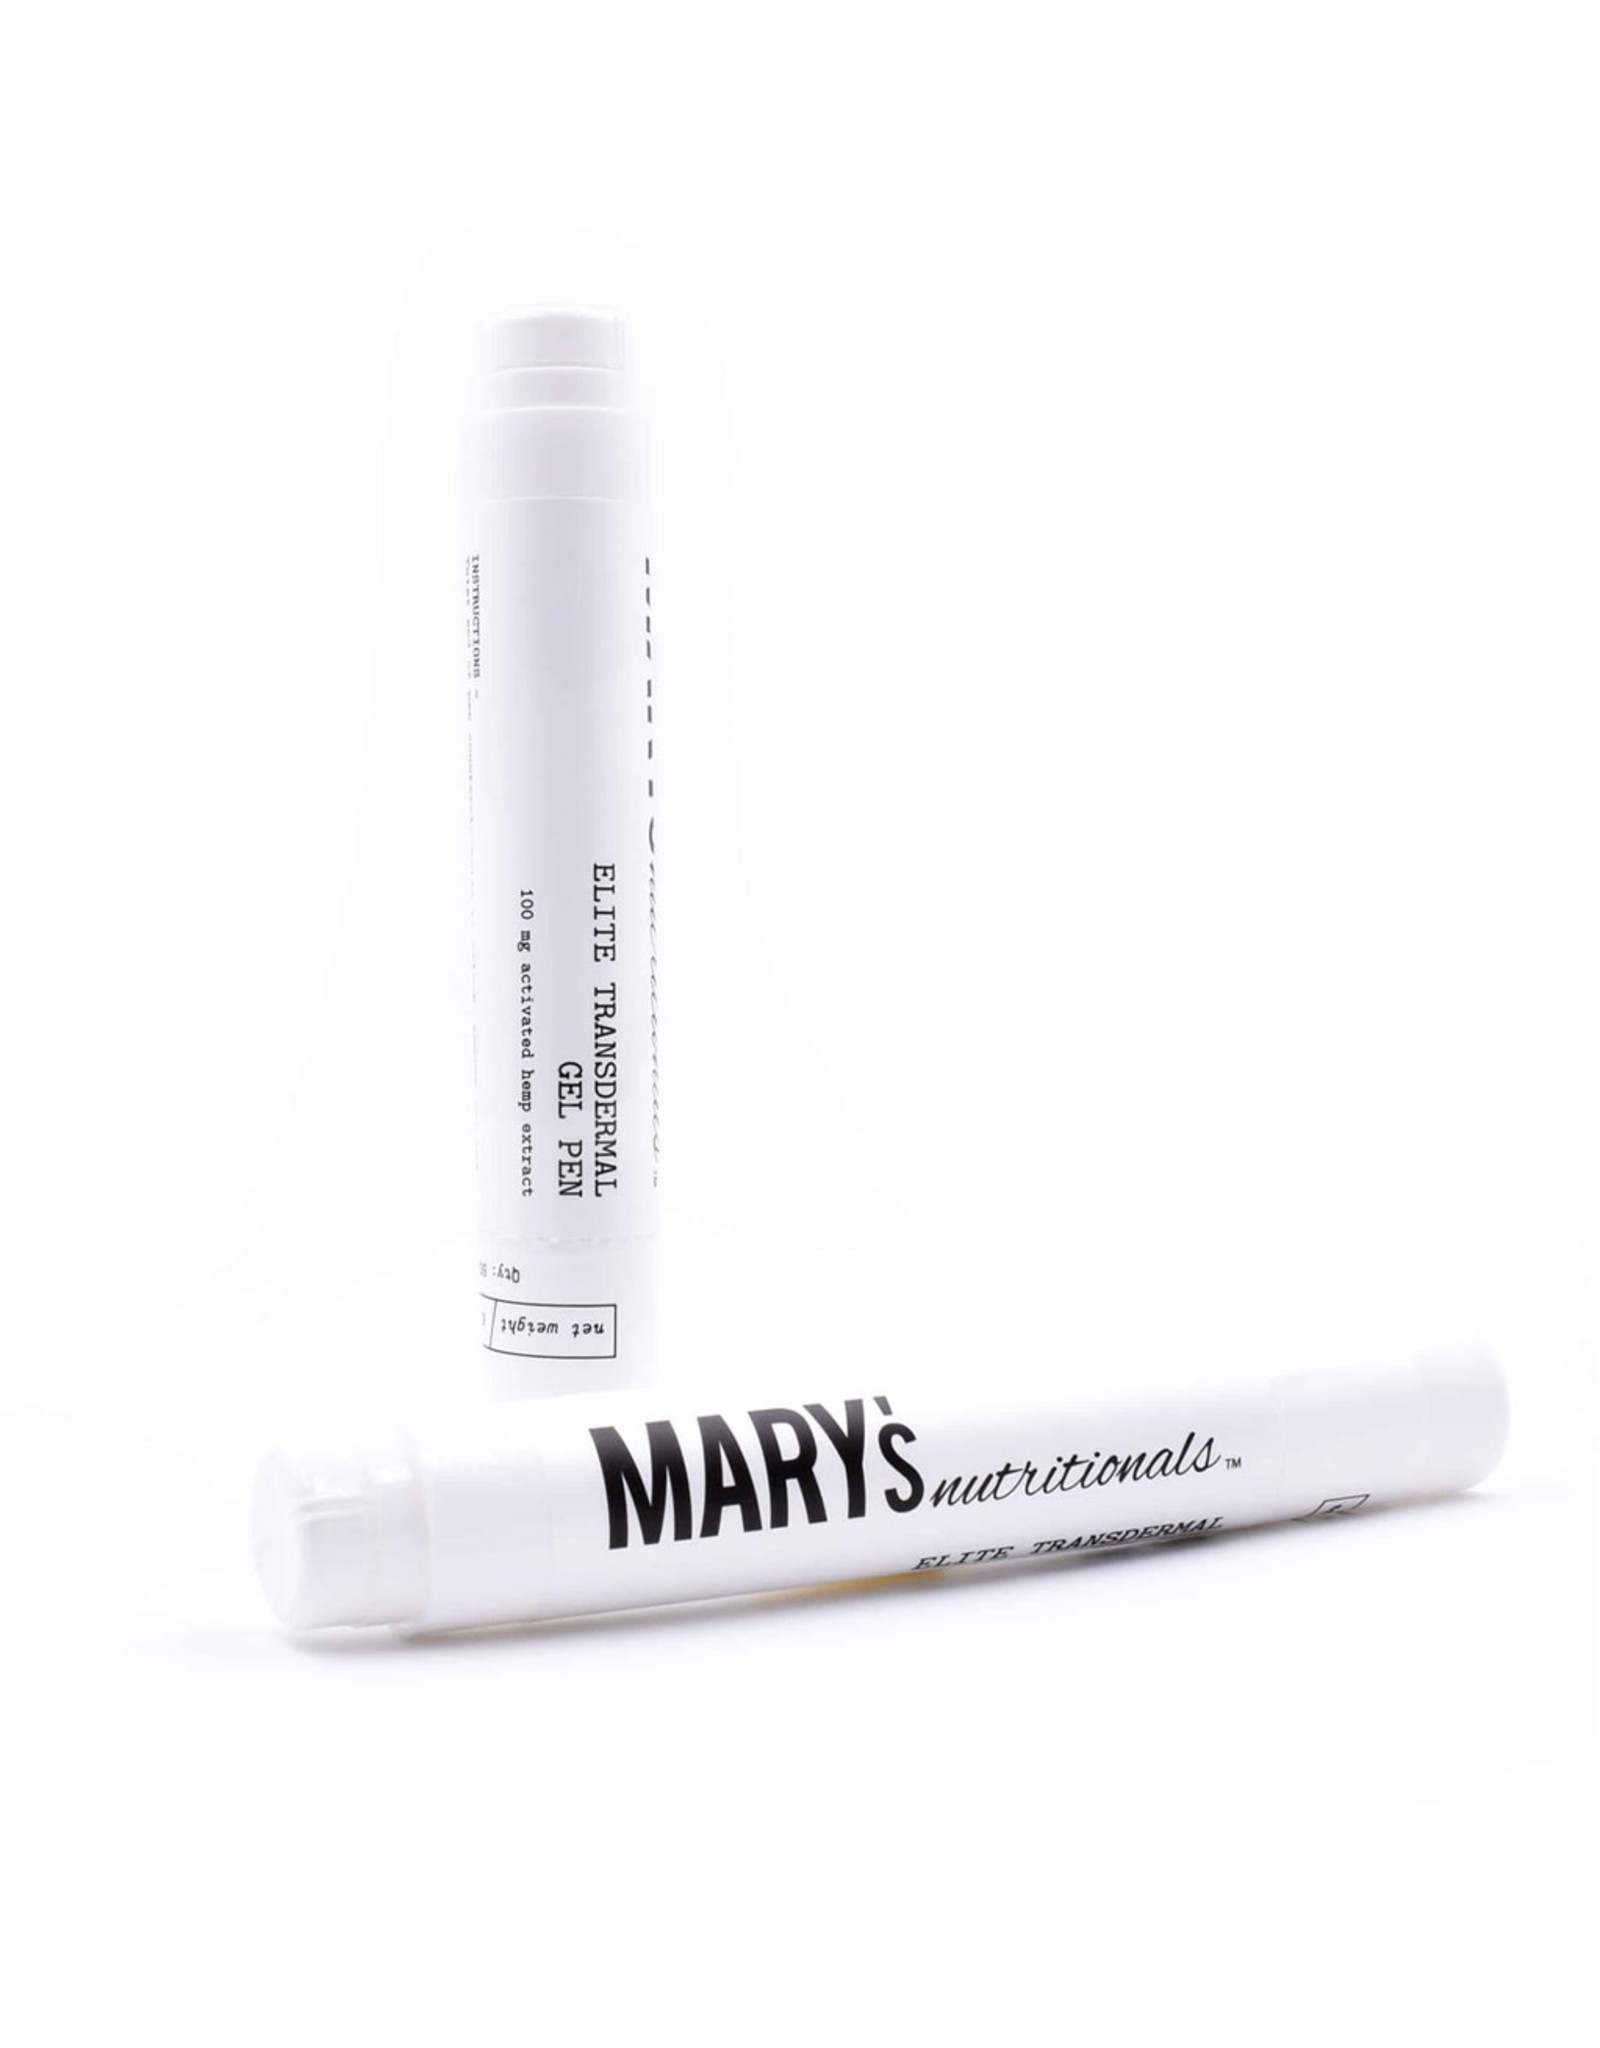 Mary's Nutritionals Mary's Nutritionals 100mg .22oz Transdermal Gel Pen